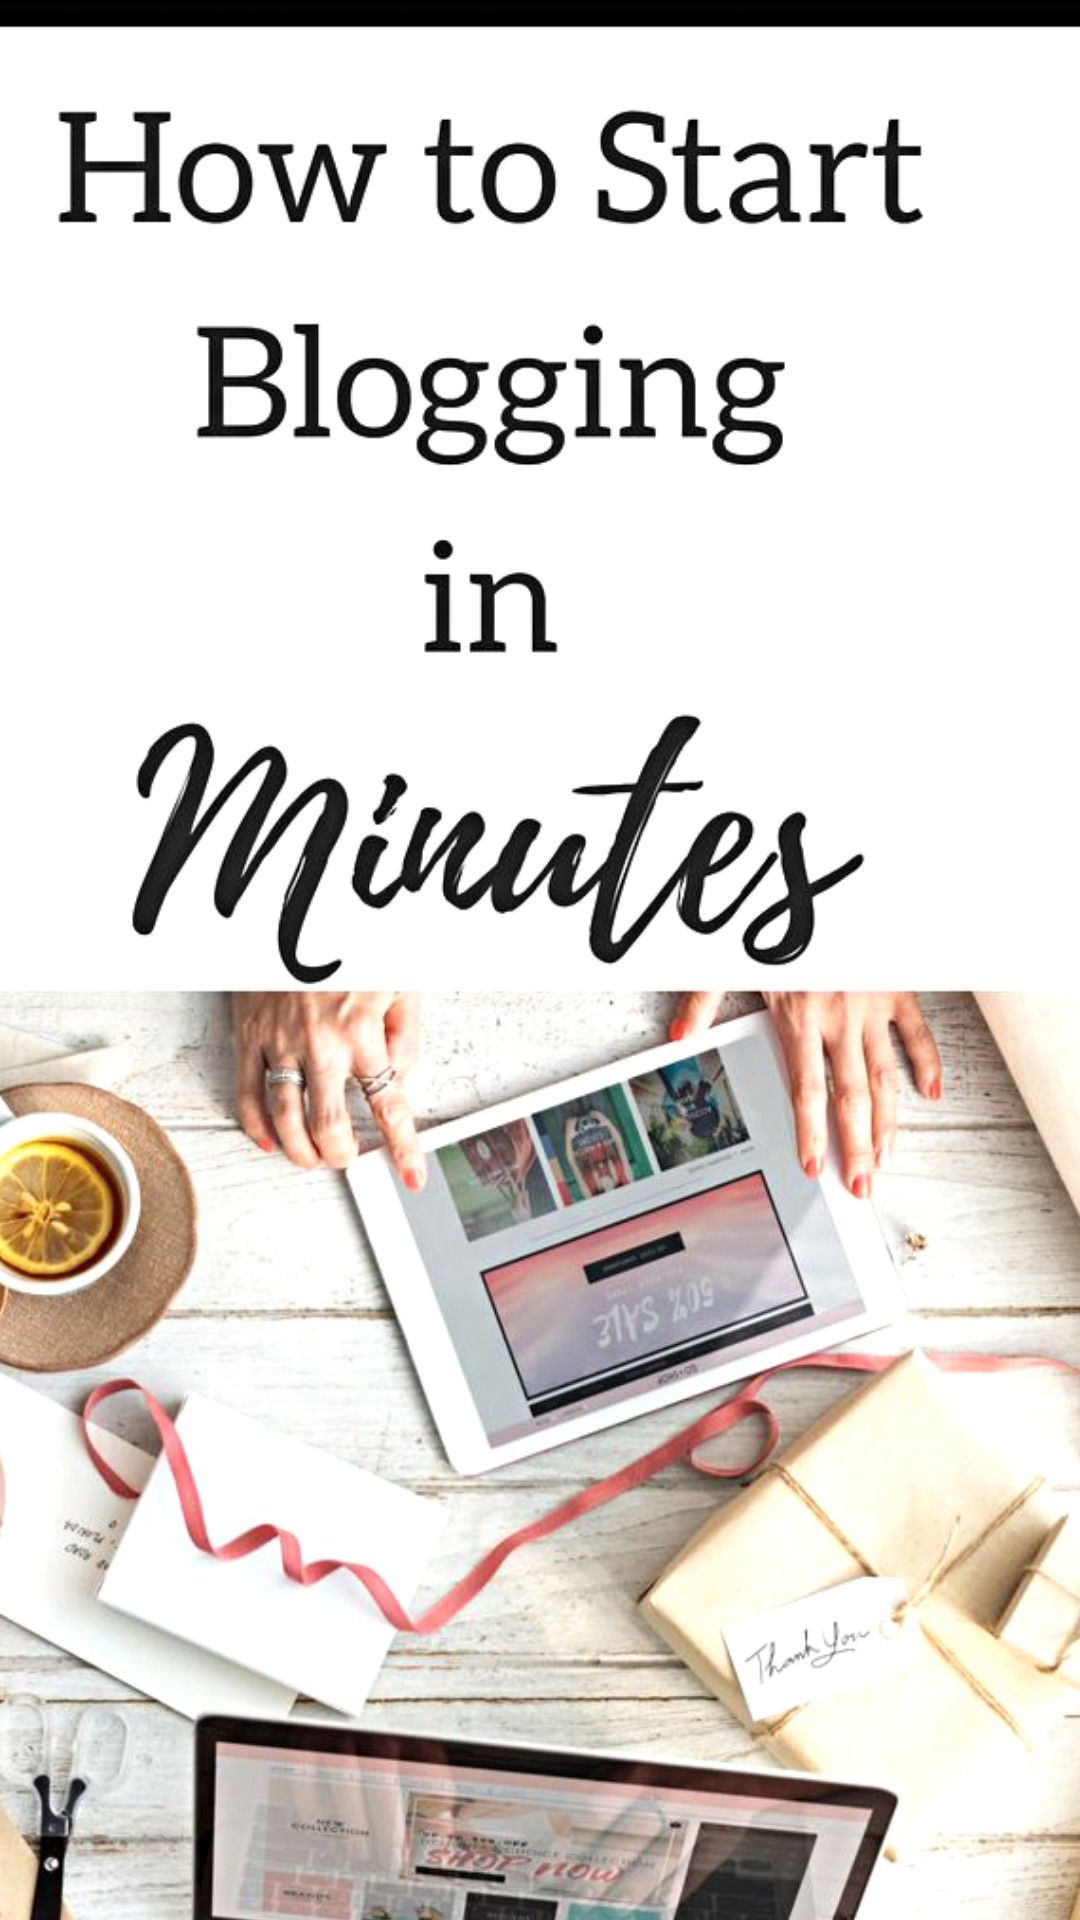 In less than 20 minutes,you can create your own blog and ...